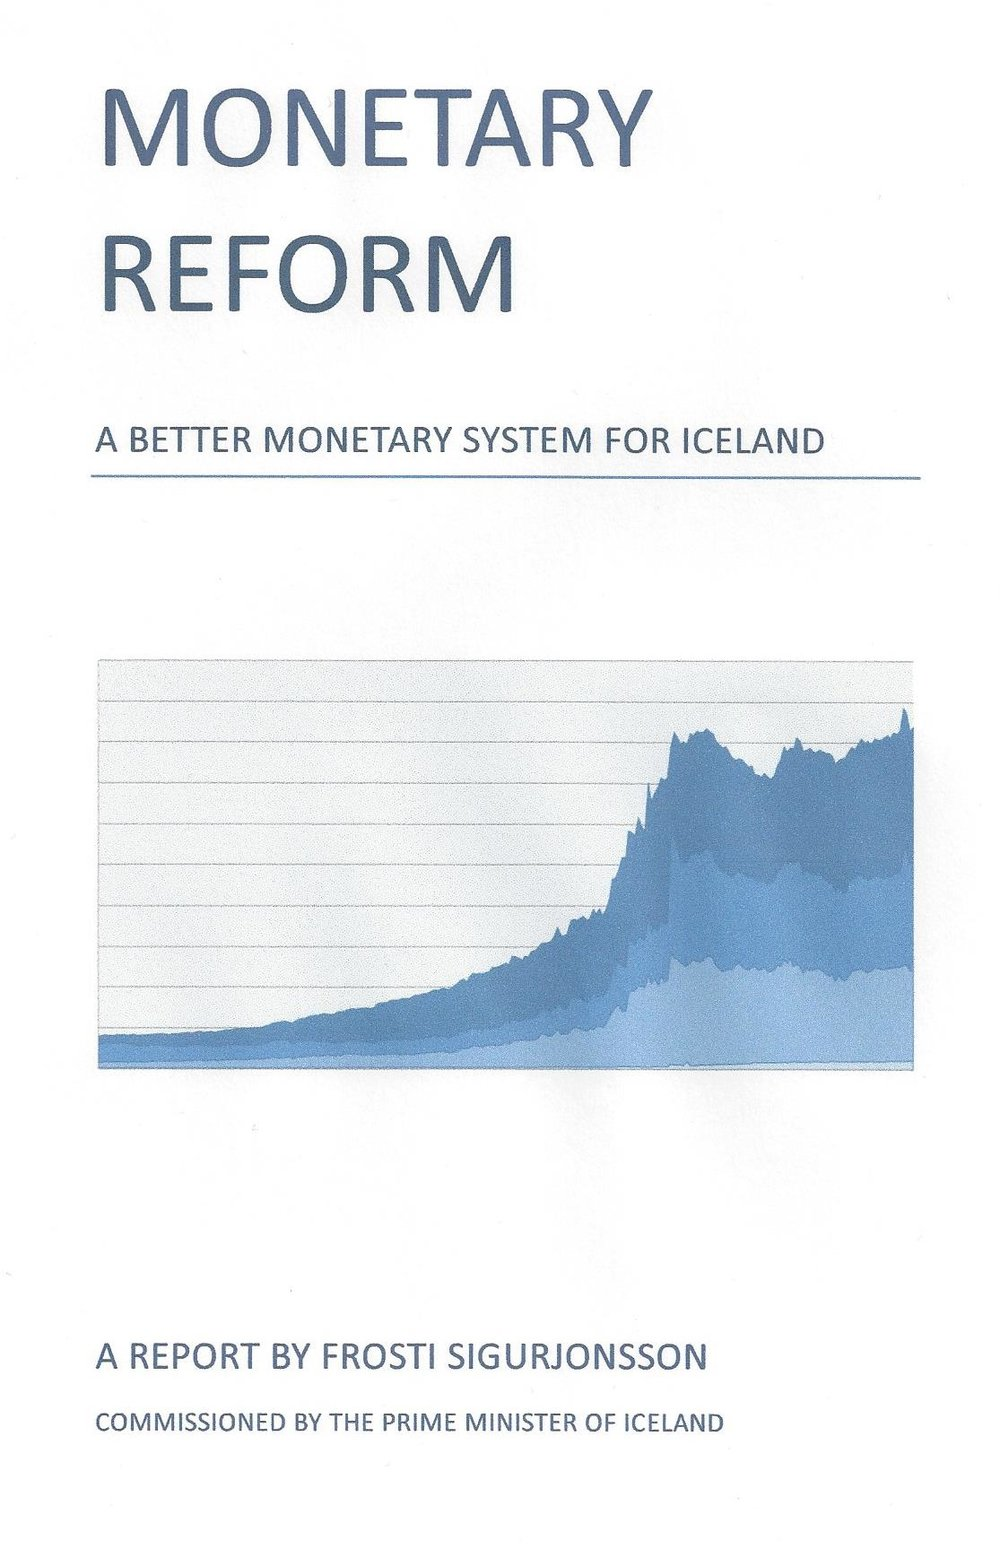 monetary reform. a better monetary system for iceland by frosti sigurjonsson commissioned by the prime minister of iceland